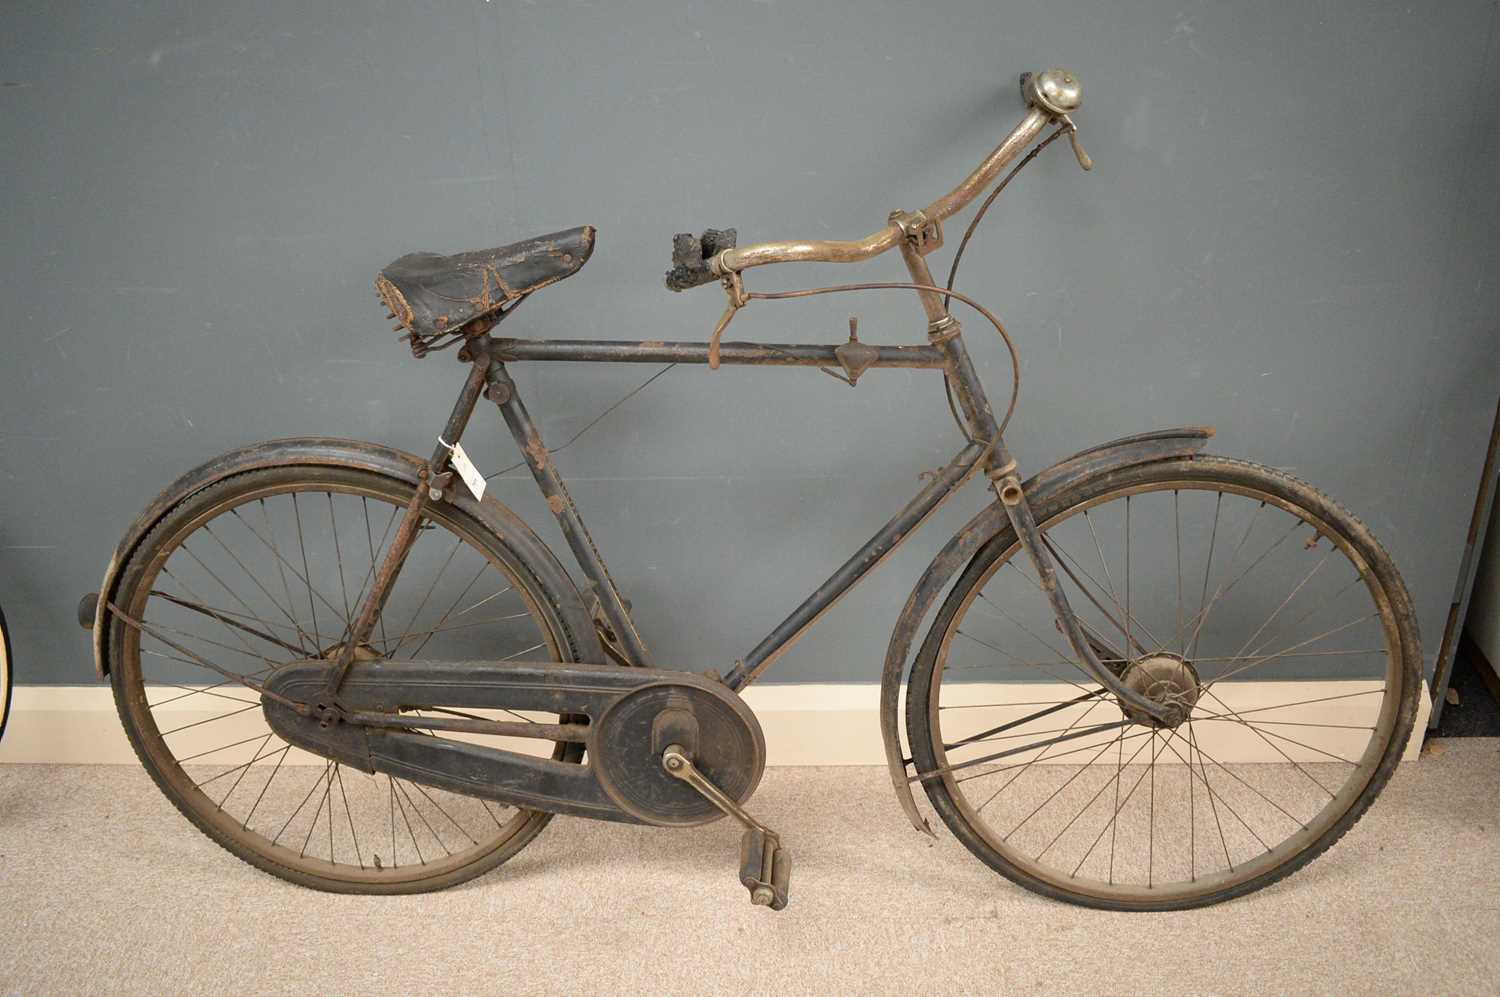 Lot 701 - A Raleigh Sports Model vintage bicycle.